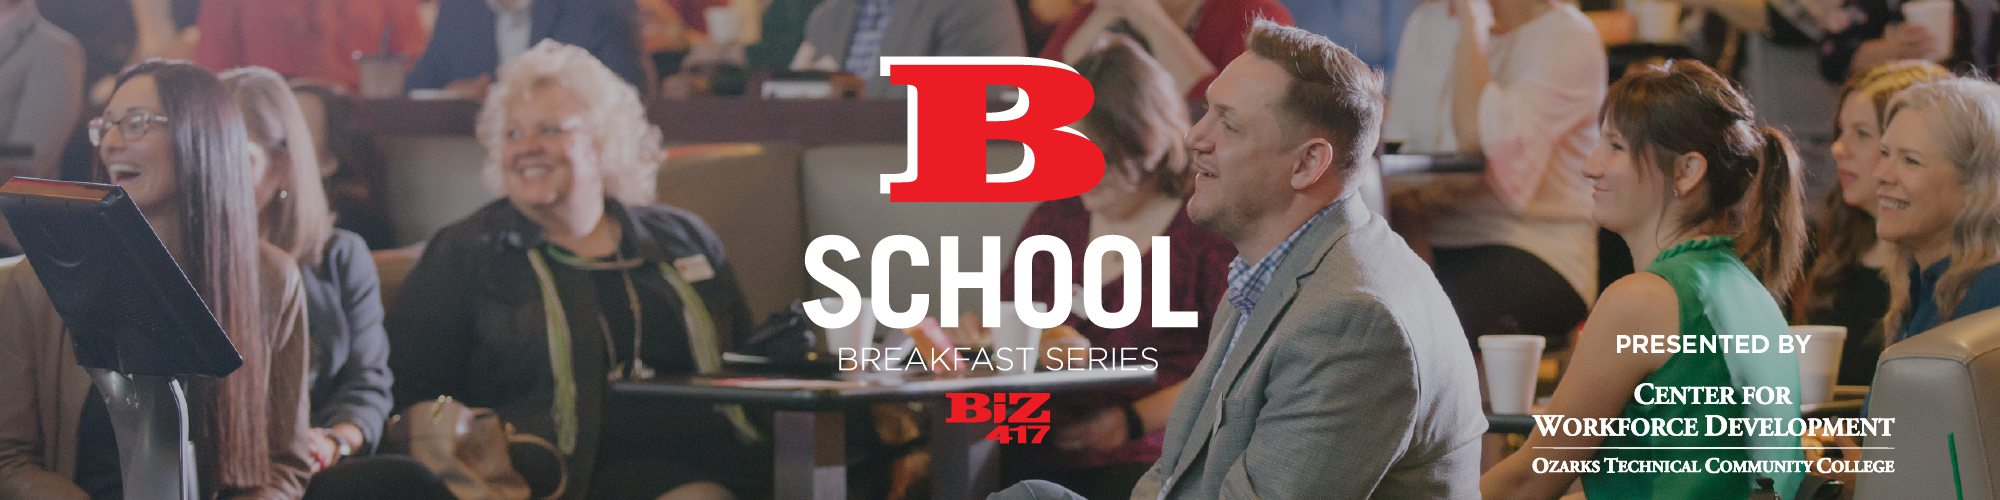 Biz 417's B-School Breakfast Series